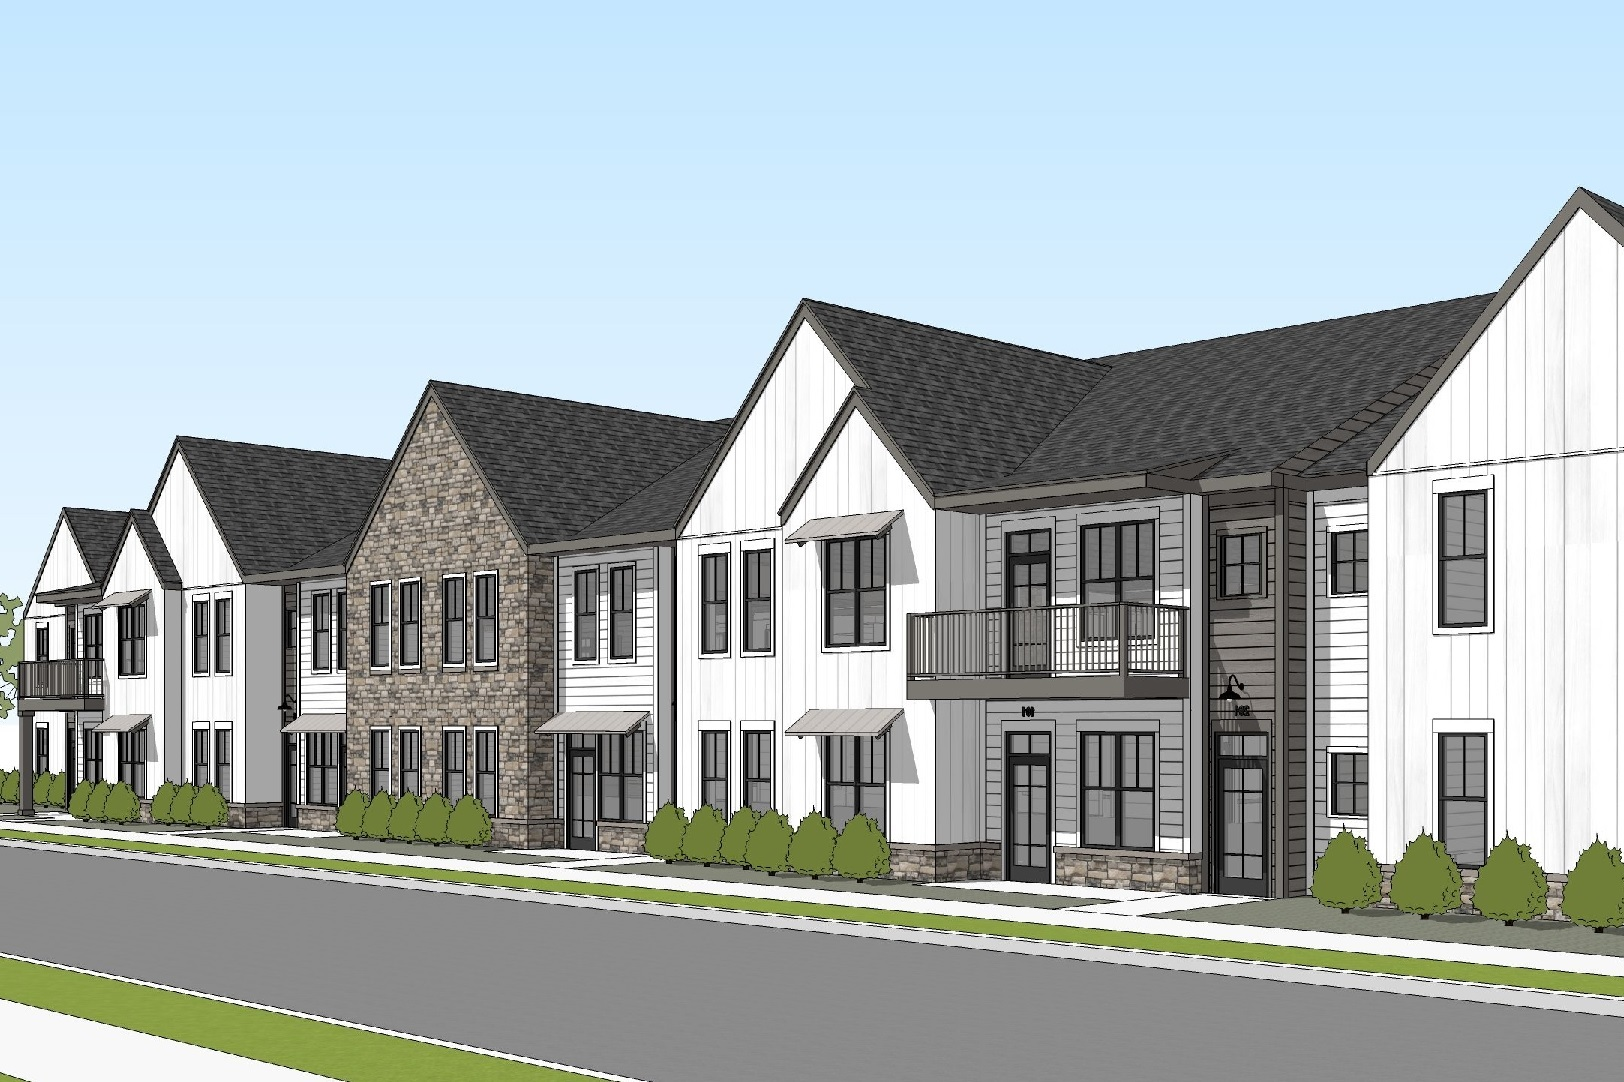 Leading Multifamily Developer Watermark Residential to Develop New 320-Unit Luxury Apartment Community in Grand Rapids